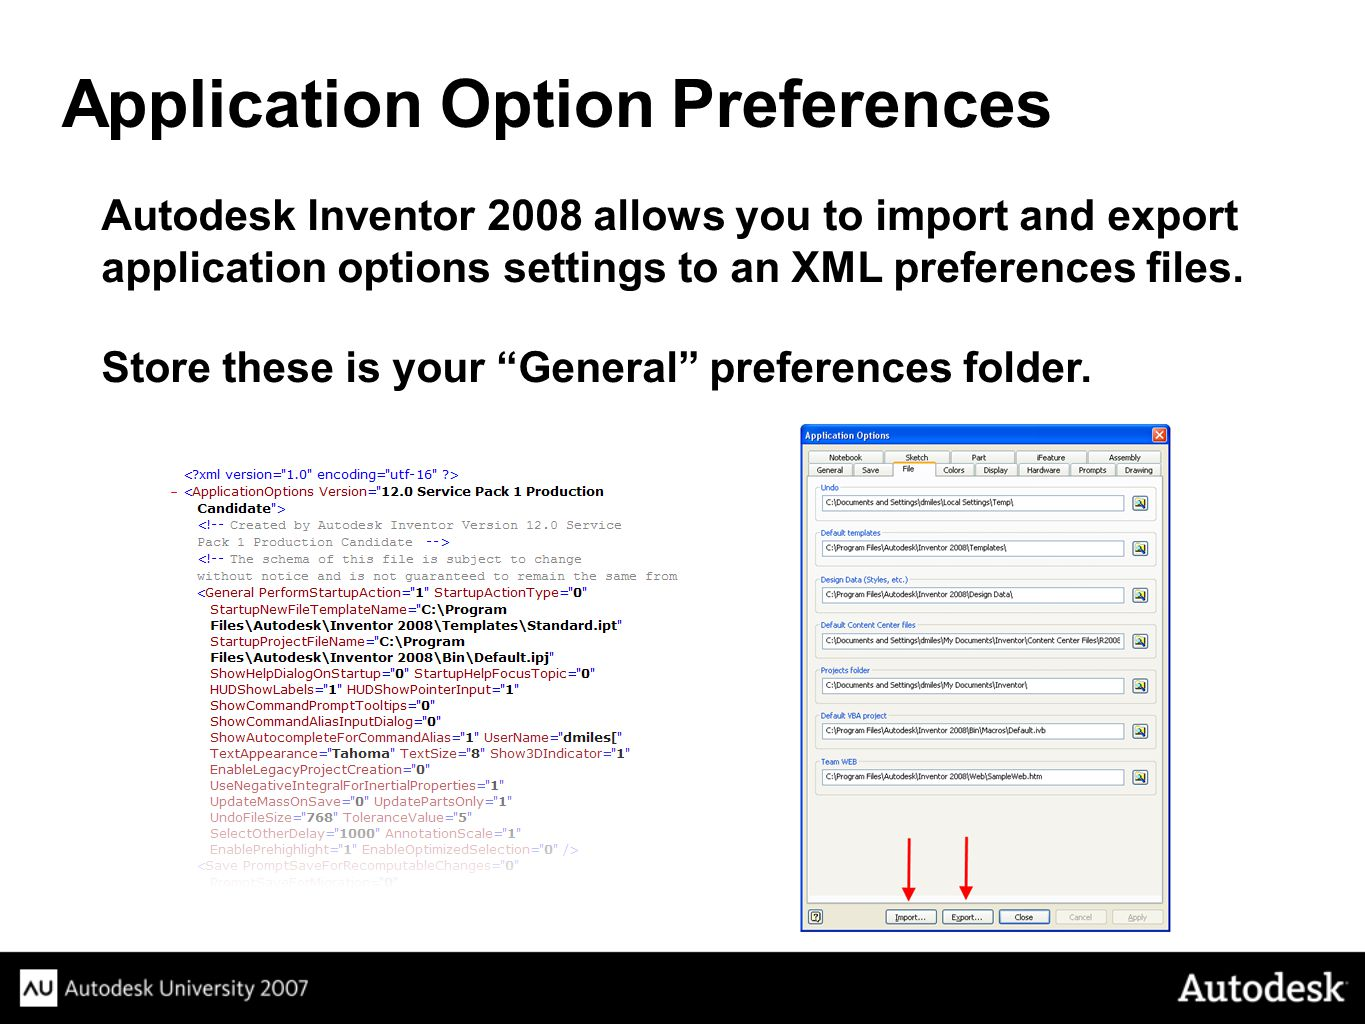 Autodesk Inventor 2008 allows you to import and export application options settings to an XML preferences files.